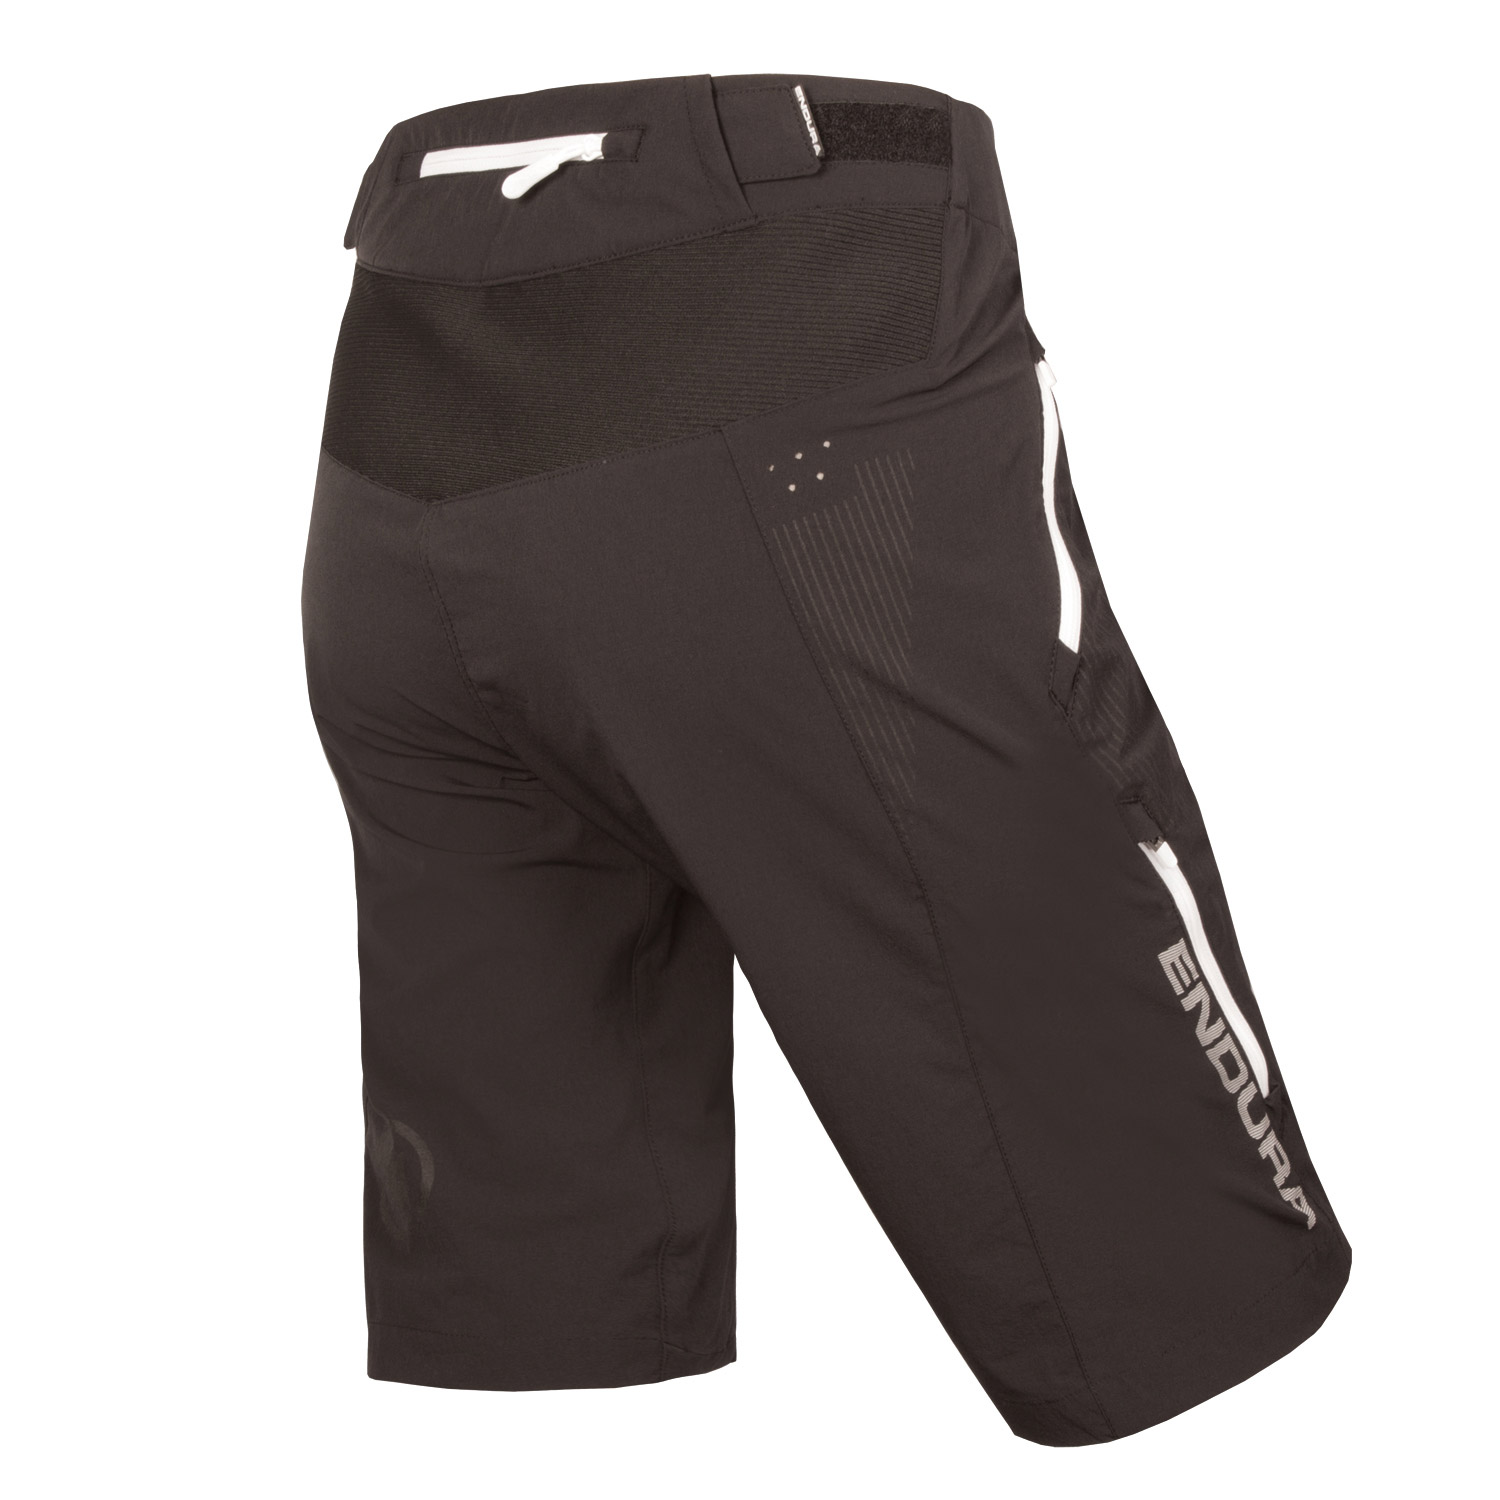 Wms SingleTrack Lite Short II back